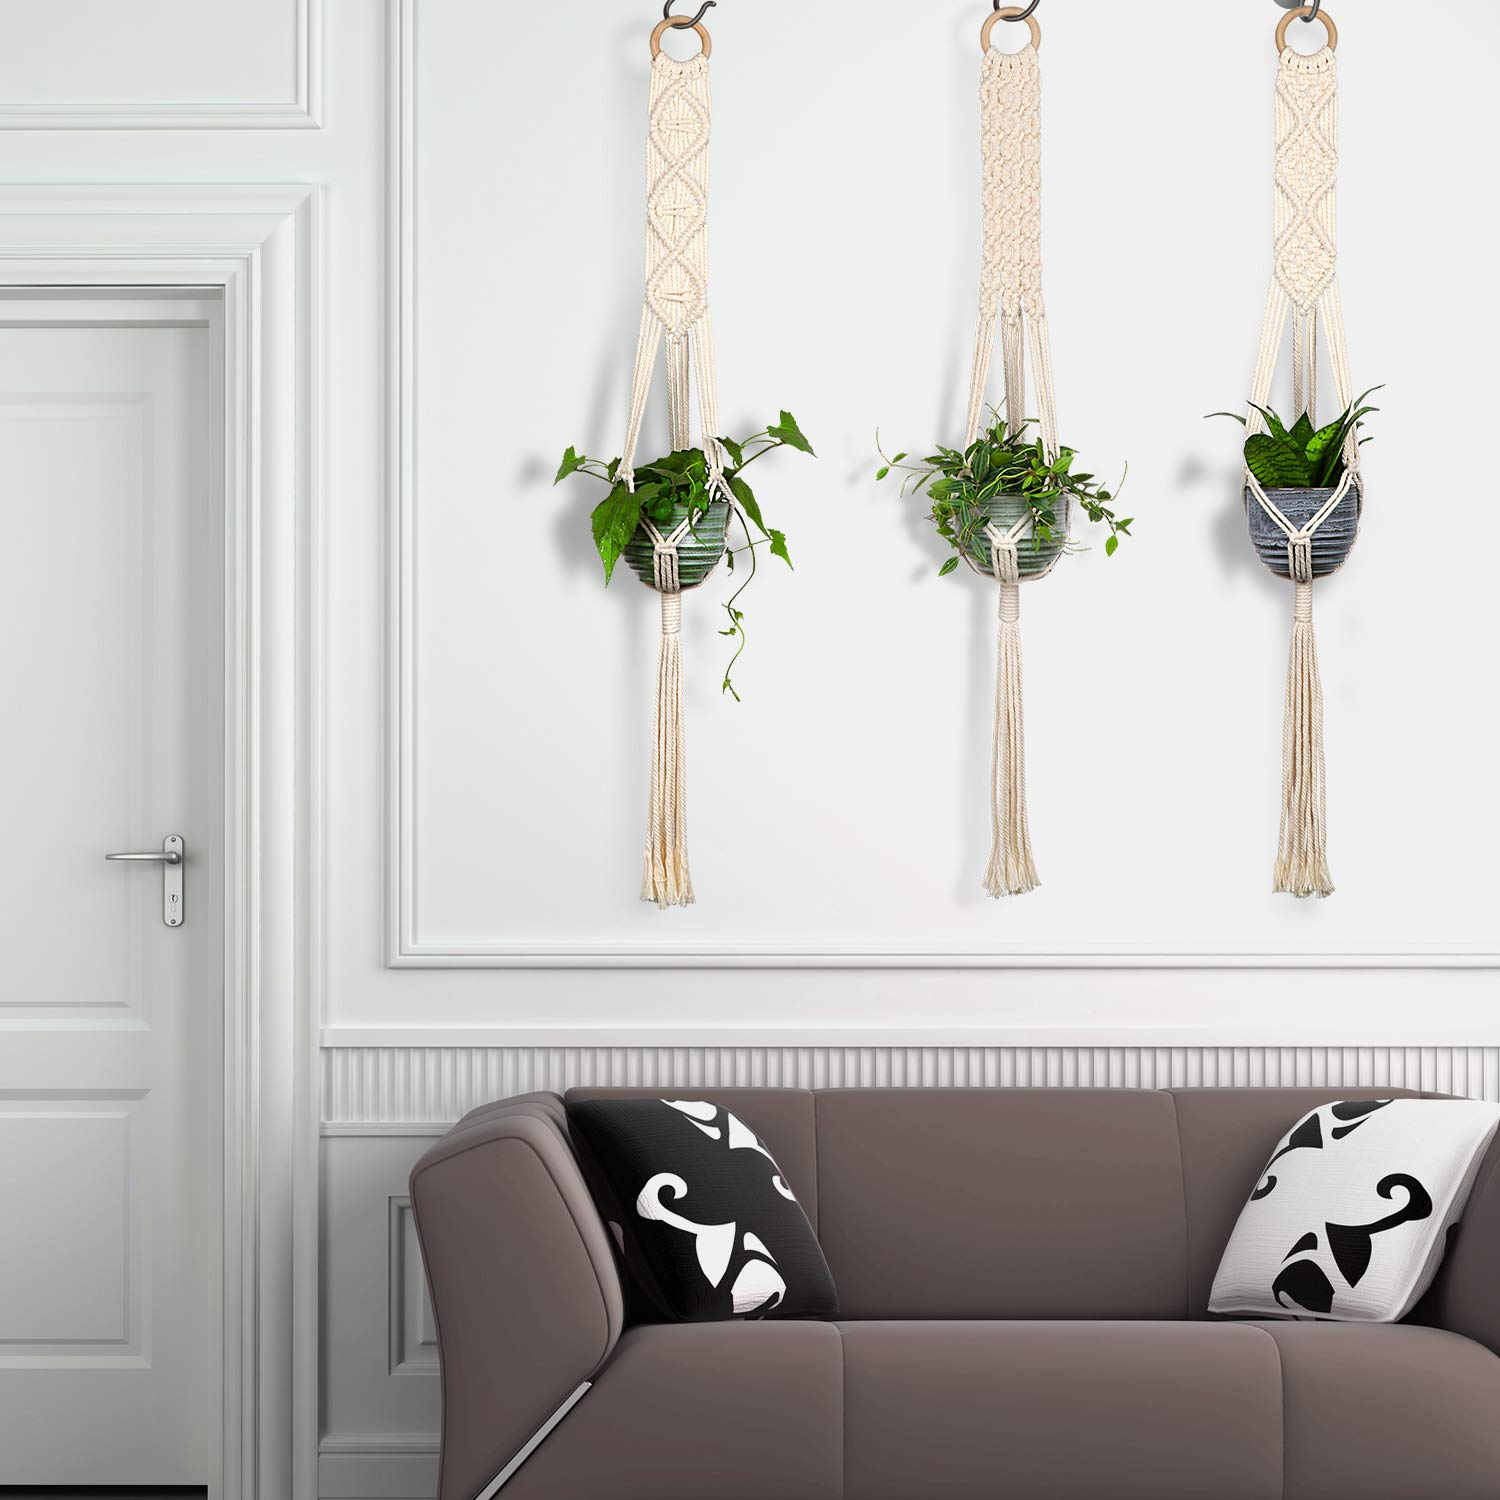 Macrame Plant Hangers - House Plants Hanging Holder - Hanging Planters for Indoor Outdoor Plants - Basket Pots Hangers 100% Cotton Cord 3 Legs 40 Inch in Length, Wall Art Boho Home Decor, 3Pcs